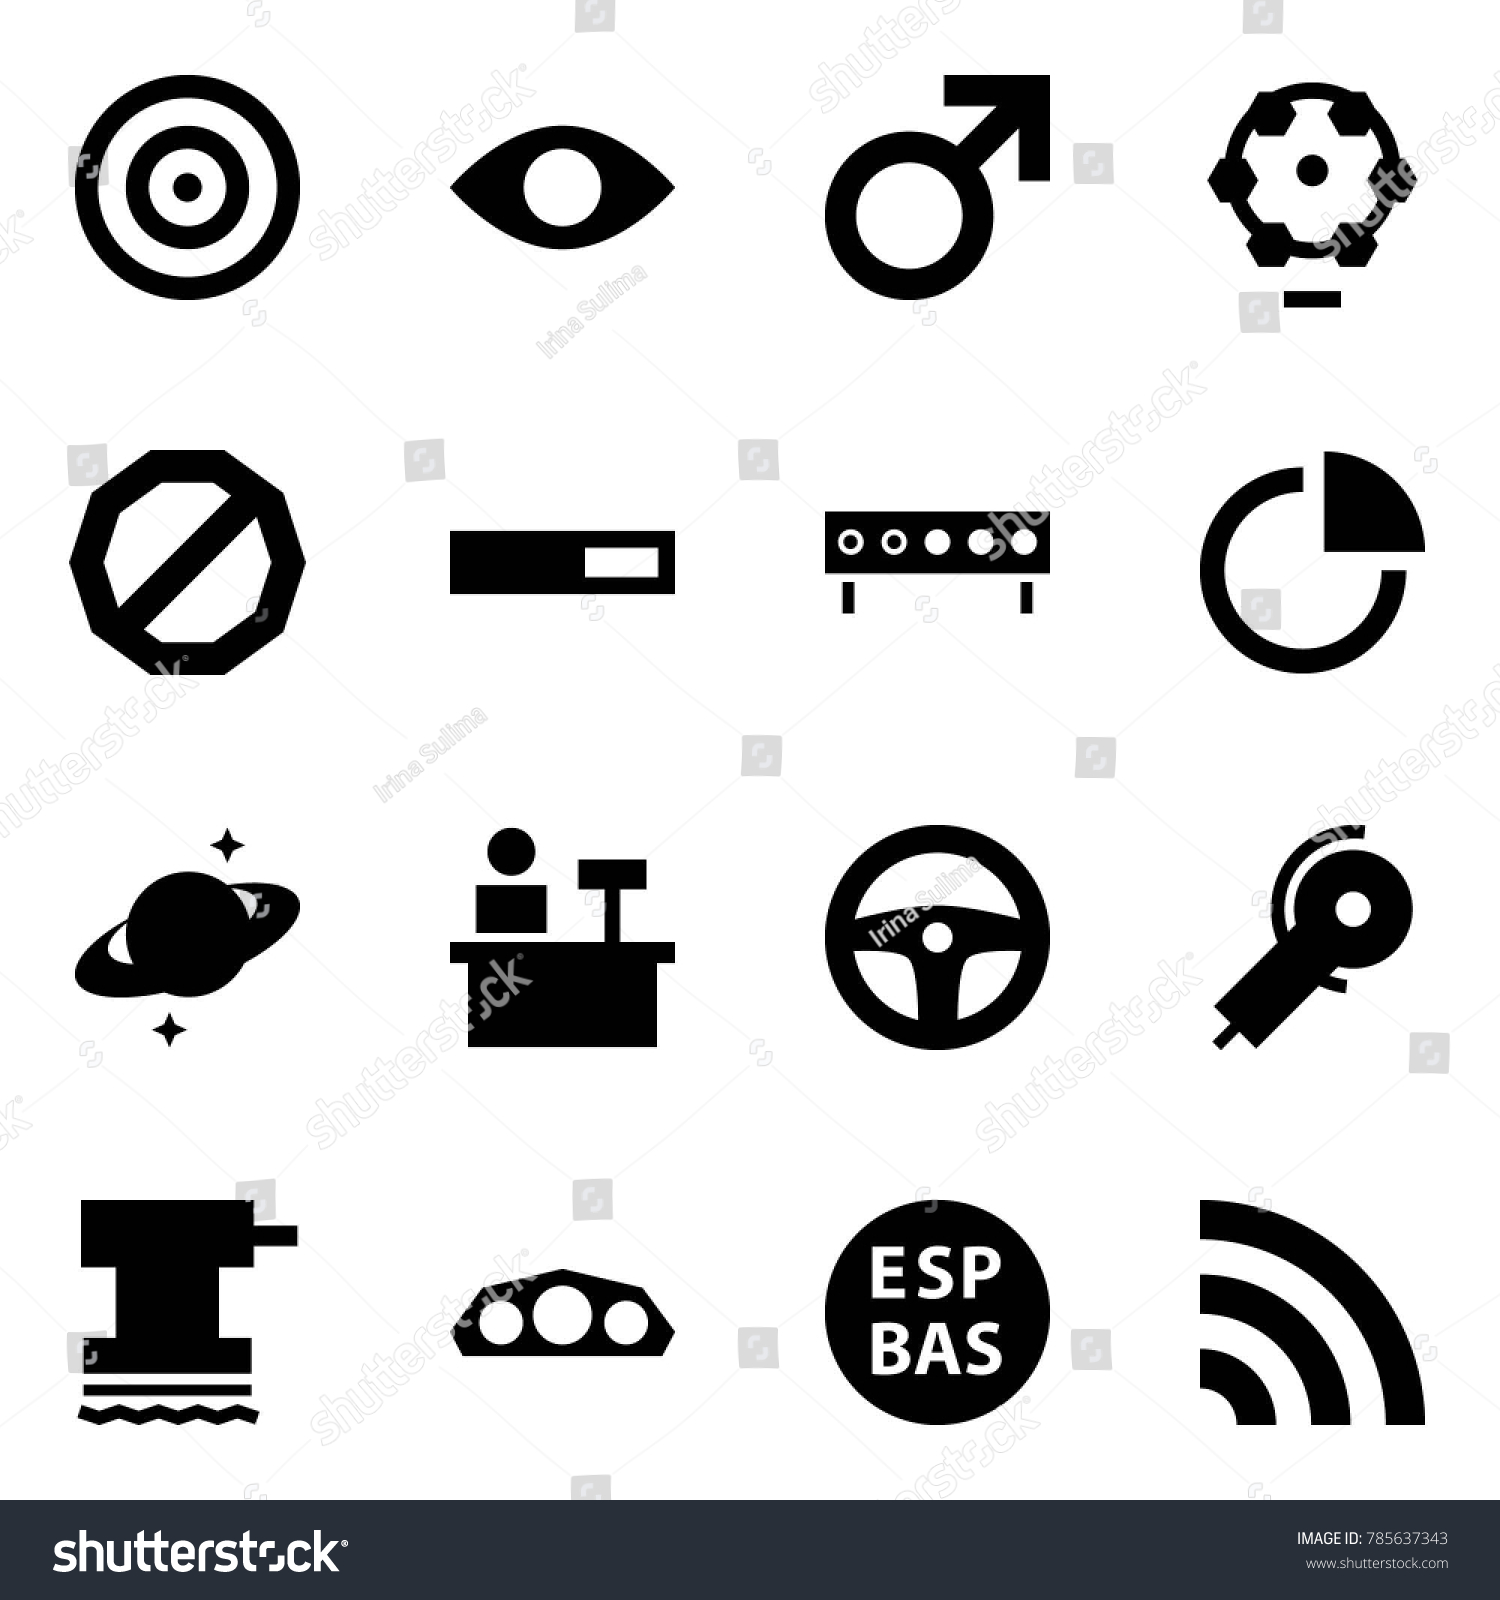 Origami Style Icon Set Target Vector Stock Royalty Free Saturn Wheel Diagram Eye Male Sign Ferris